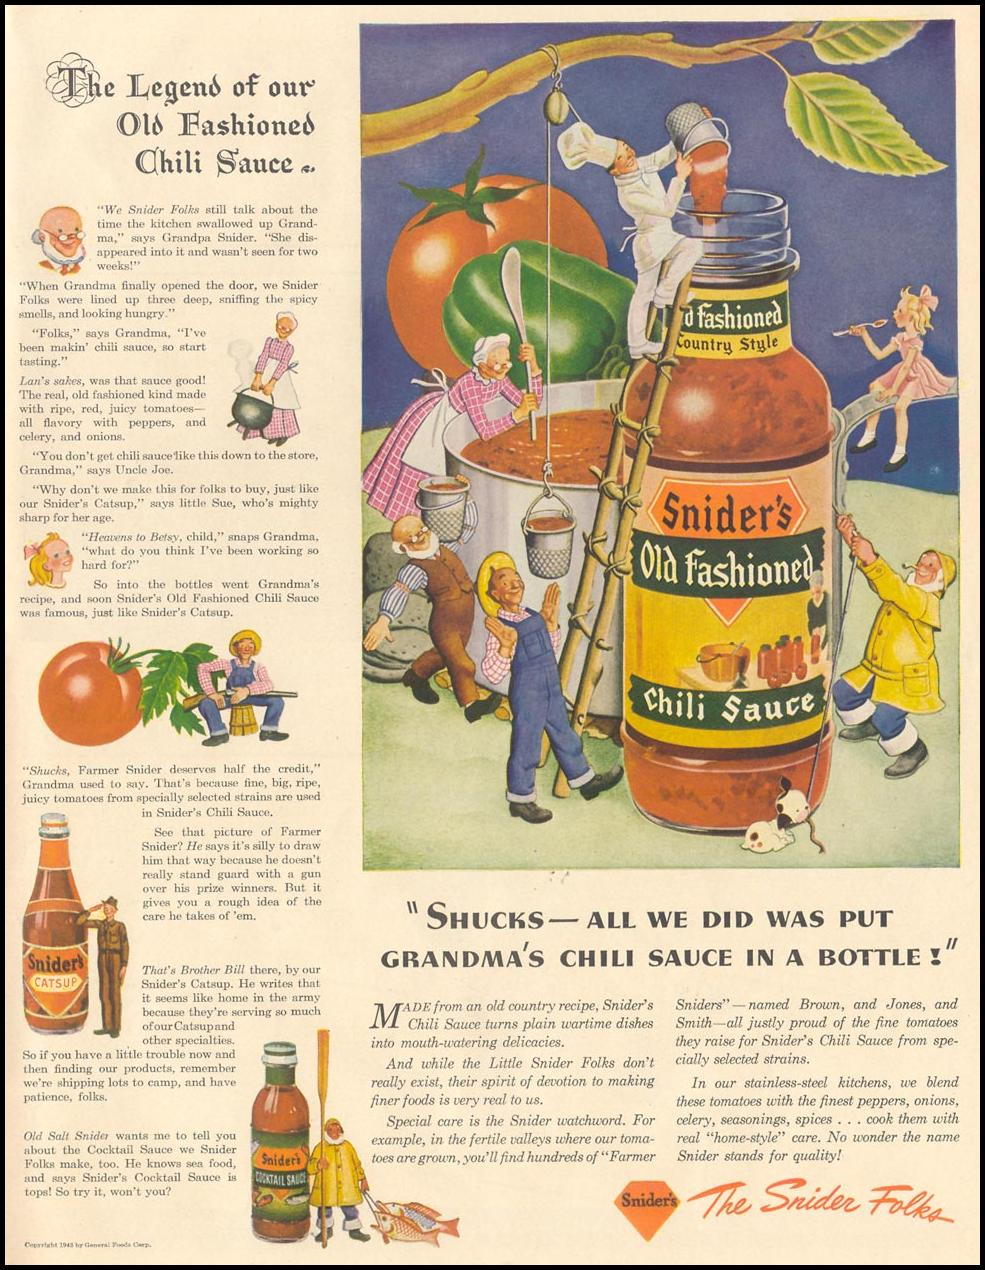 SNIDER'S OLD FASHIONED CHILI SAUCE LIFE 11/08/1943